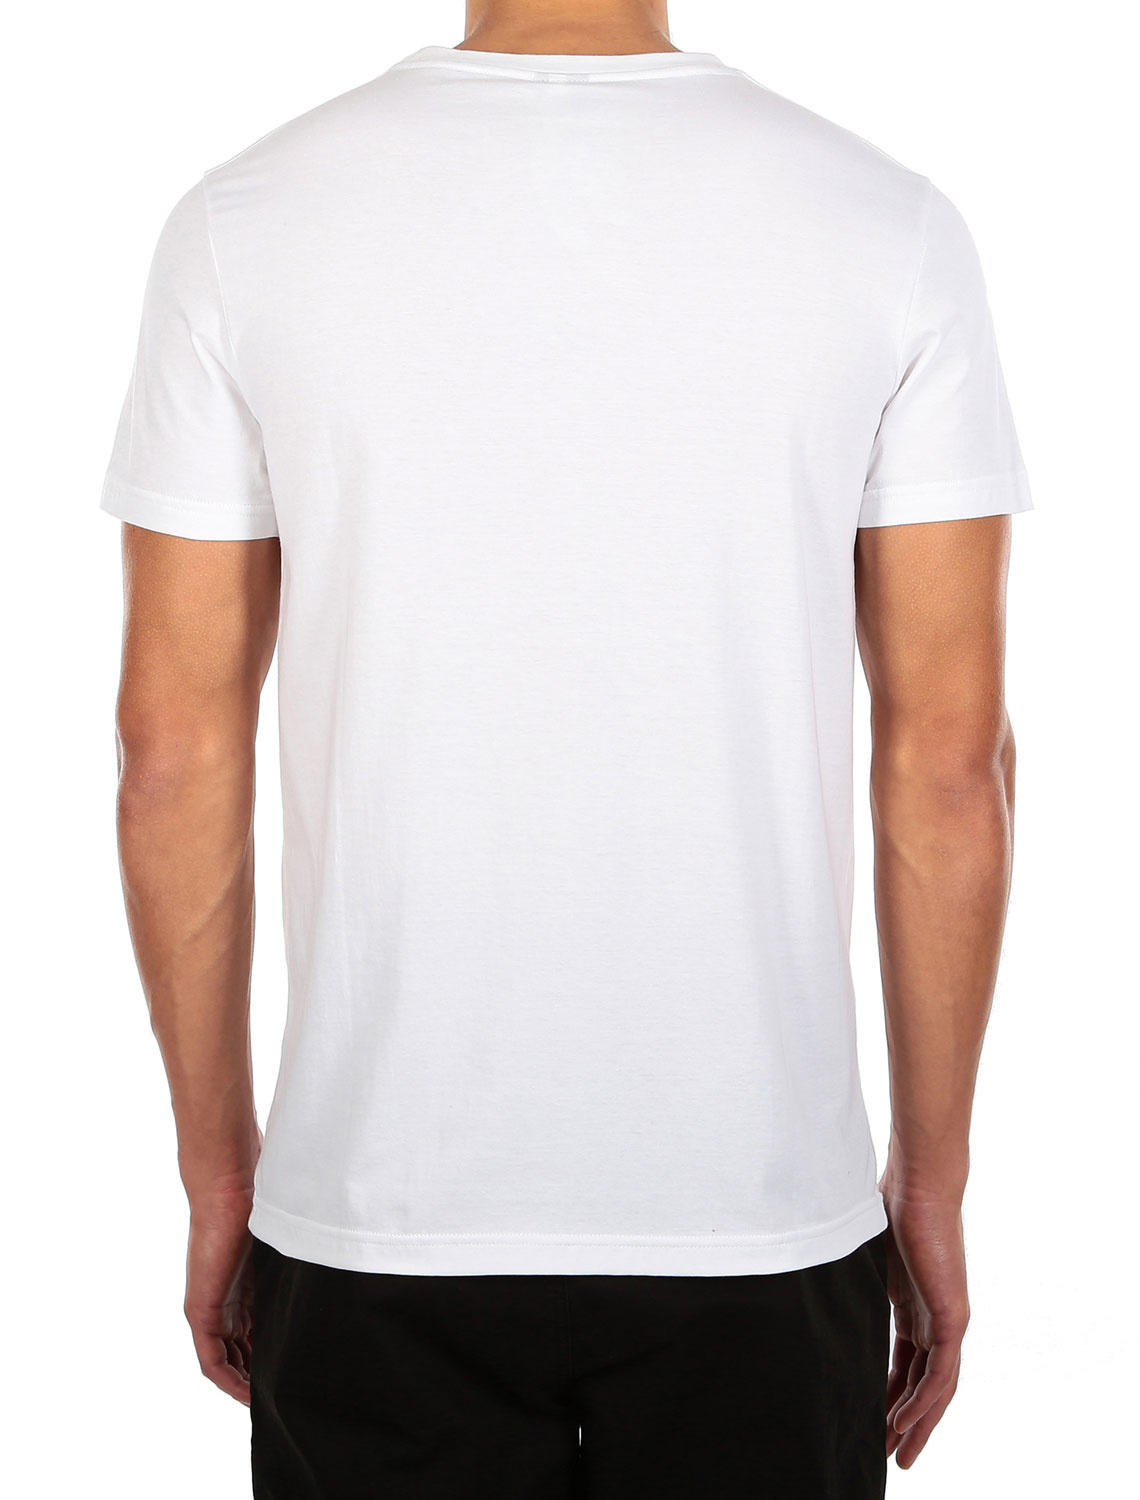 Iriedaily GET THE SPIRIT TEE white